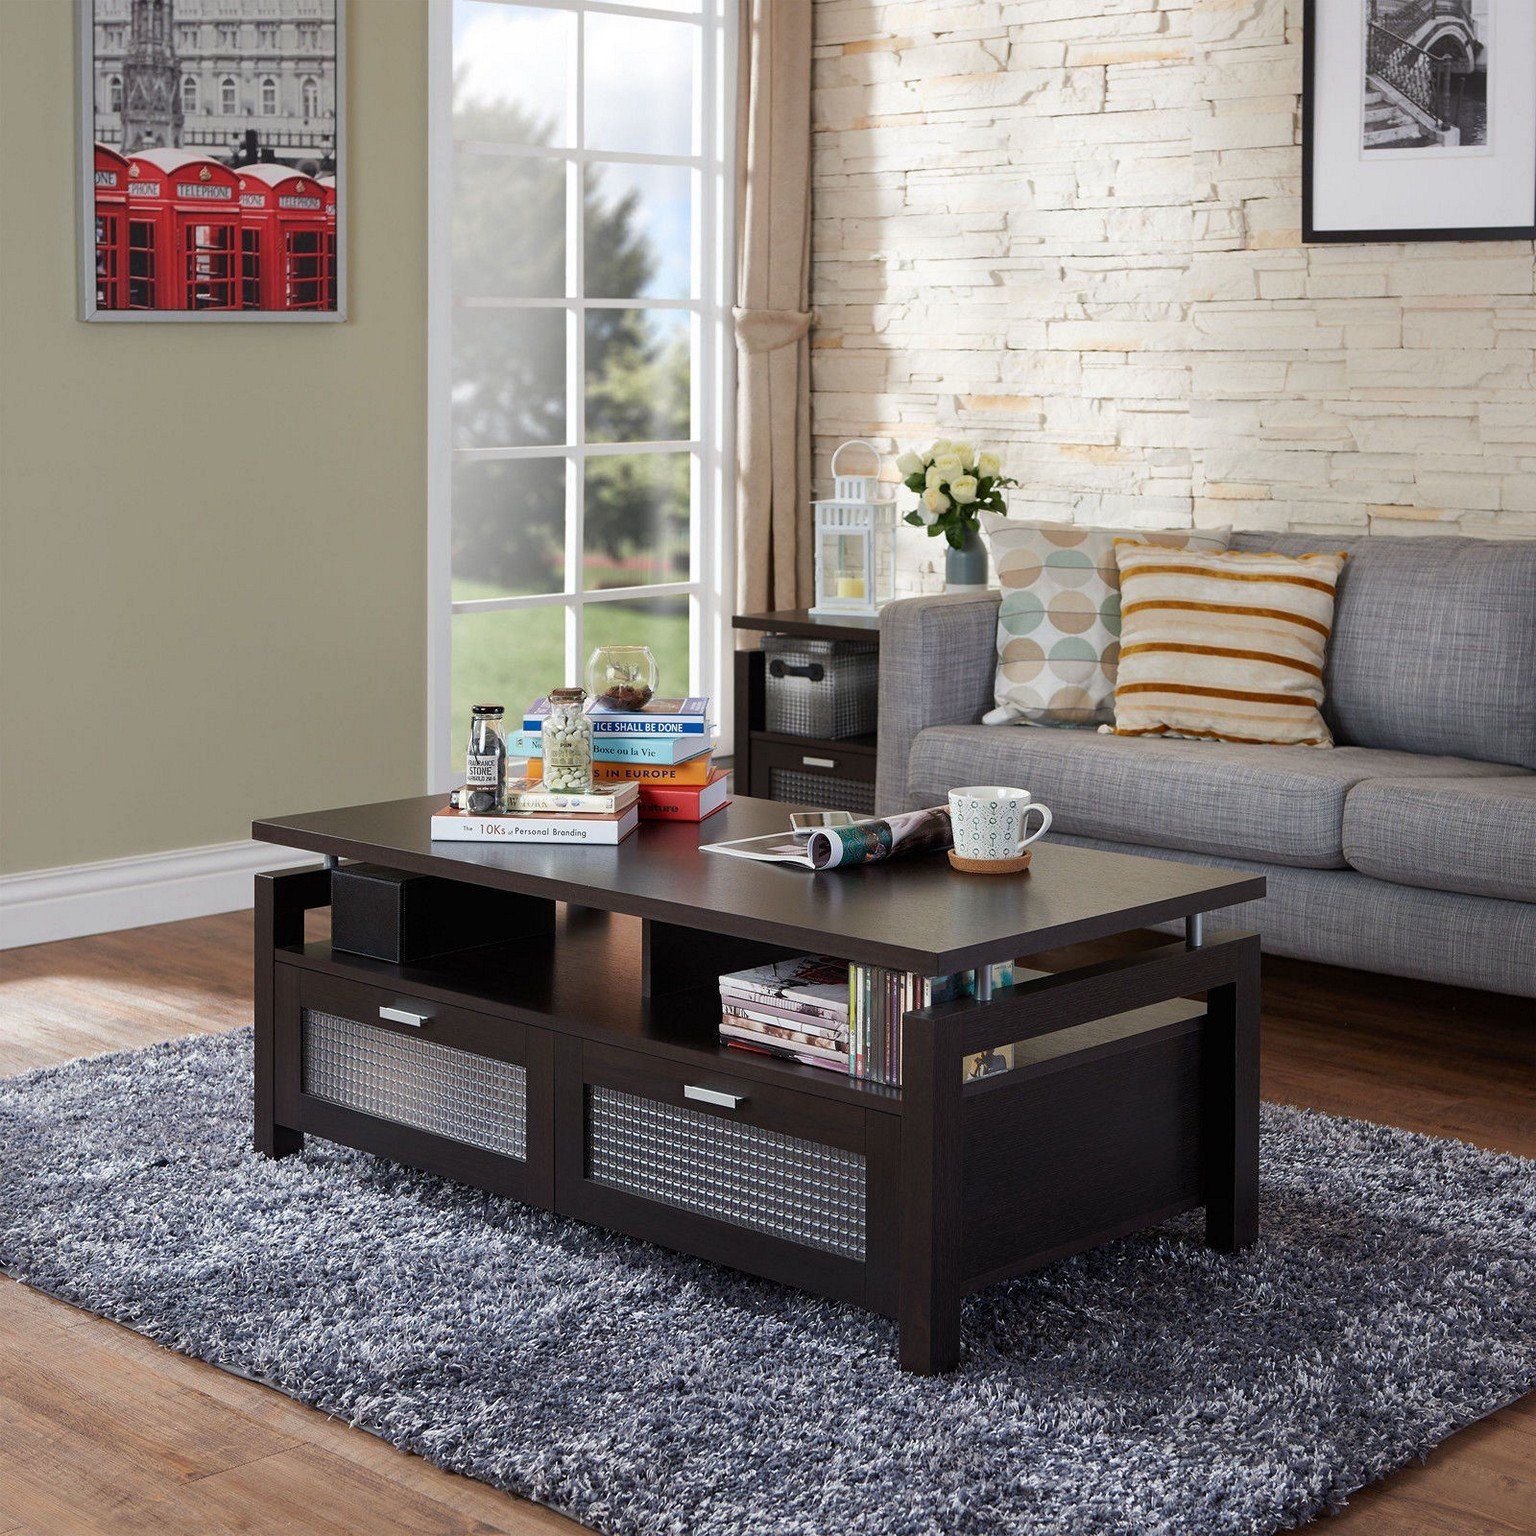 Living Room Coffee Table Decor Best Of Modern Coffee Table Centerpiece Ideas for Nice Home